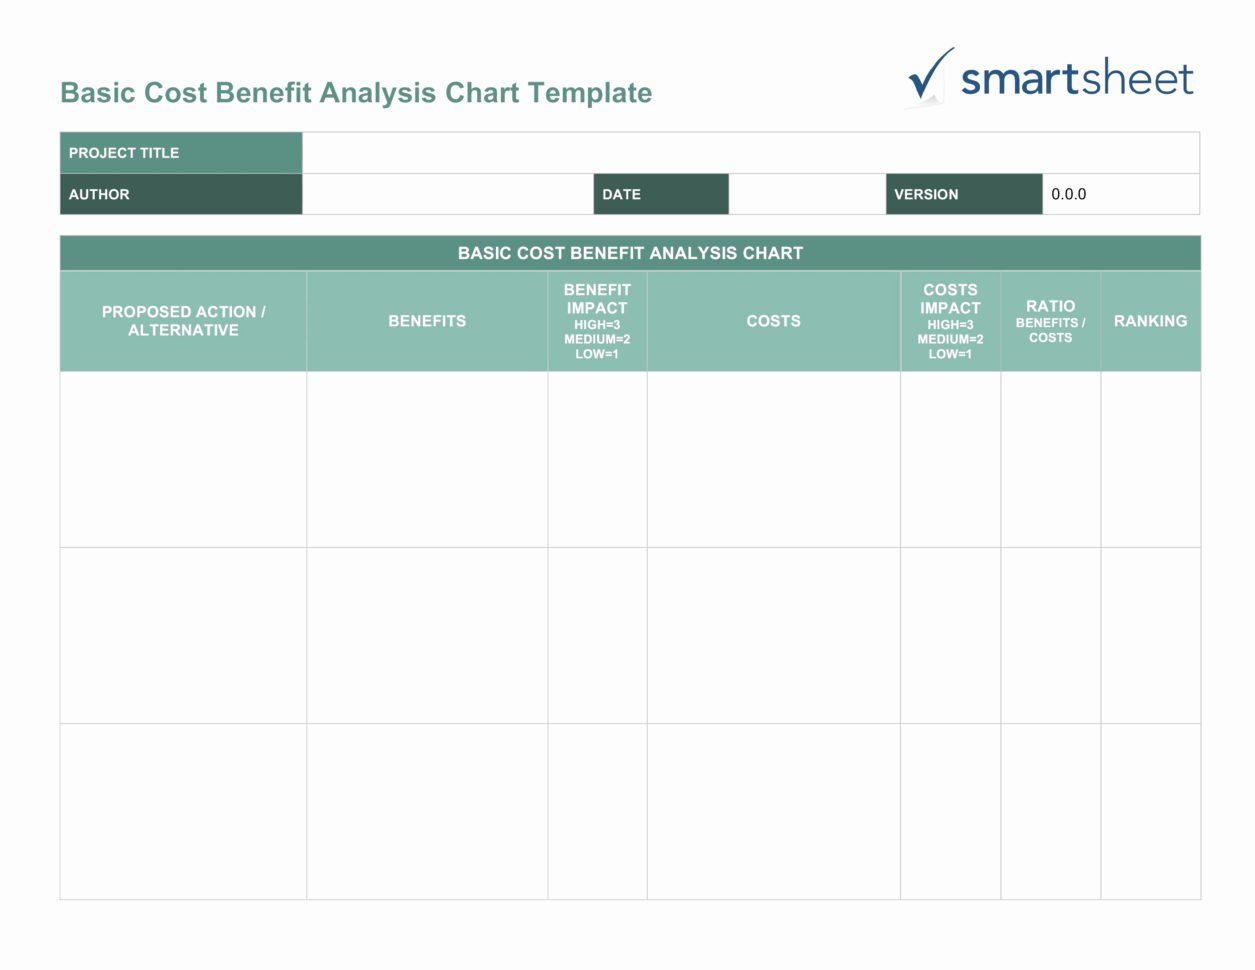 Mortgage Lender Comparison Spreadsheet For Mortgage Comparison Spreadsheet Awesome P And L Statement Template